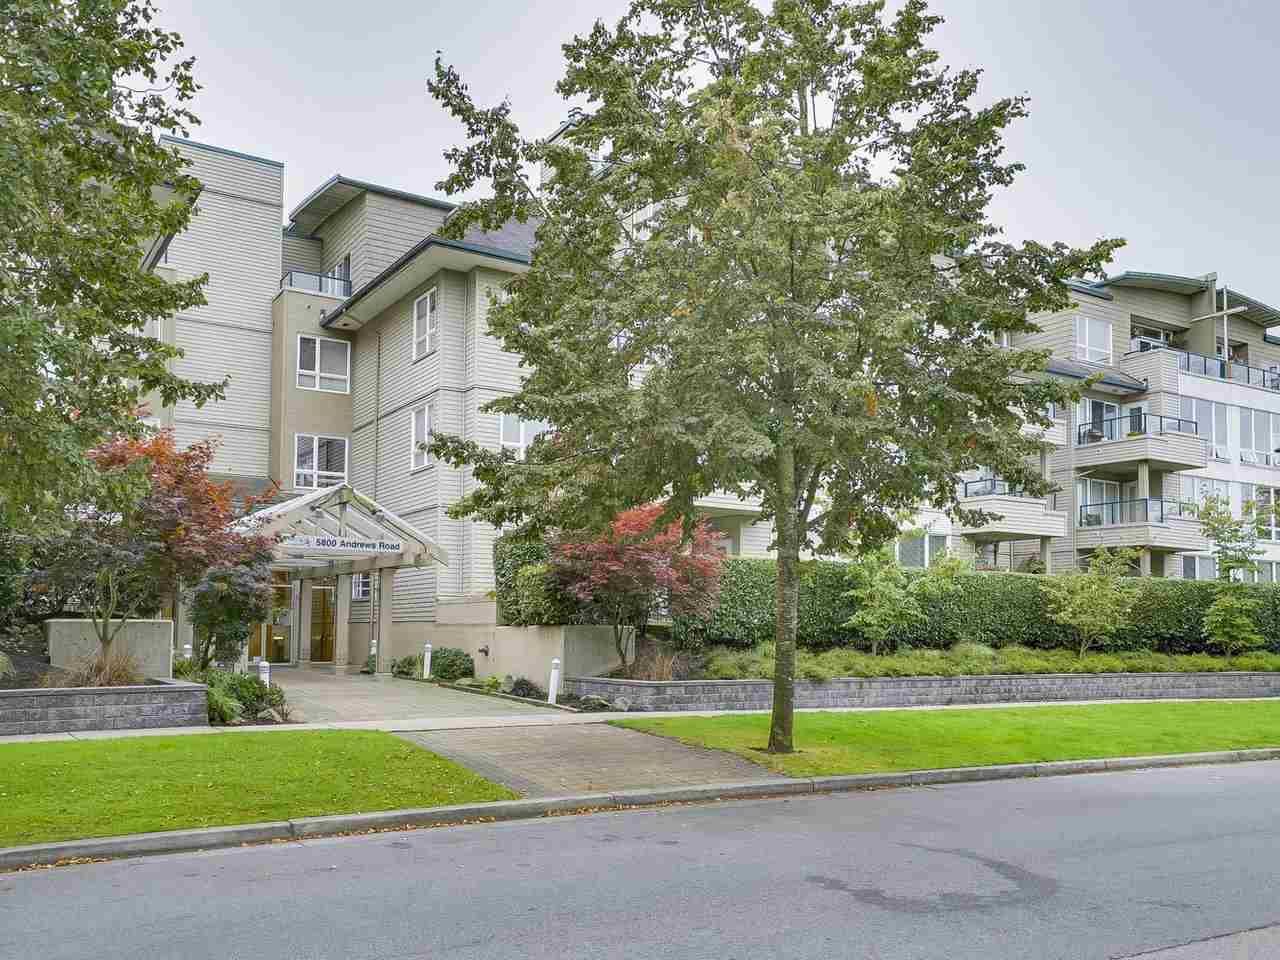 "Main Photo: 108 5800 ANDREWS Road in Richmond: Steveston South Condo for sale in ""VILLAS AT SOUTHCOVE"" : MLS®# R2202832"